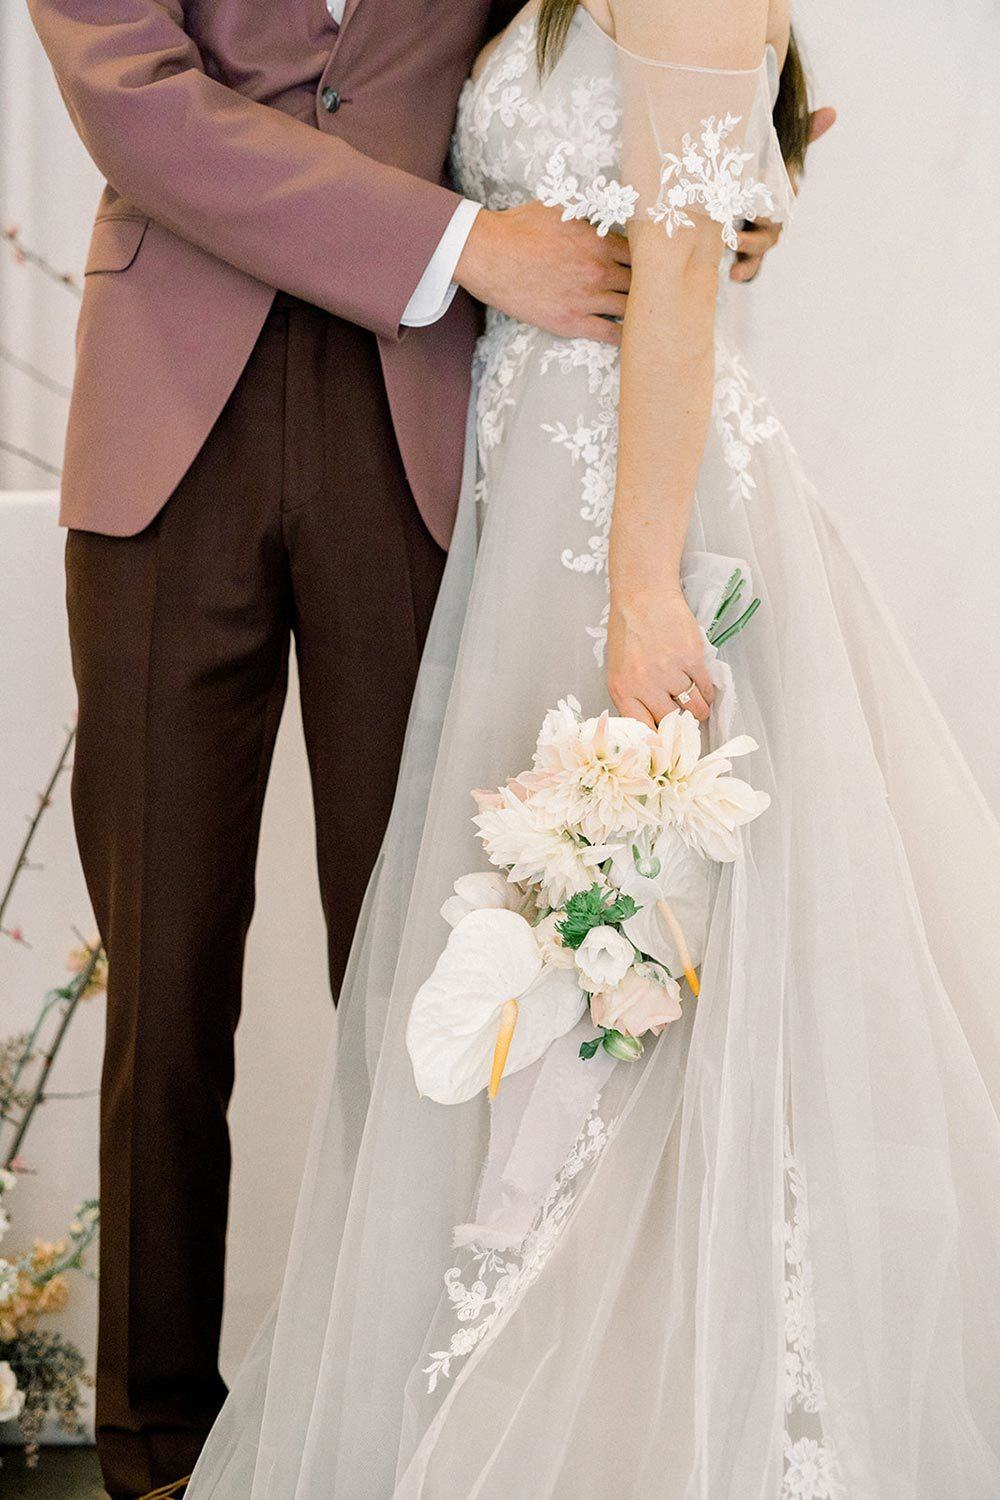 off-the-shoulder wedding dress with dusty blue tulle and lace and dusty pink groom suit